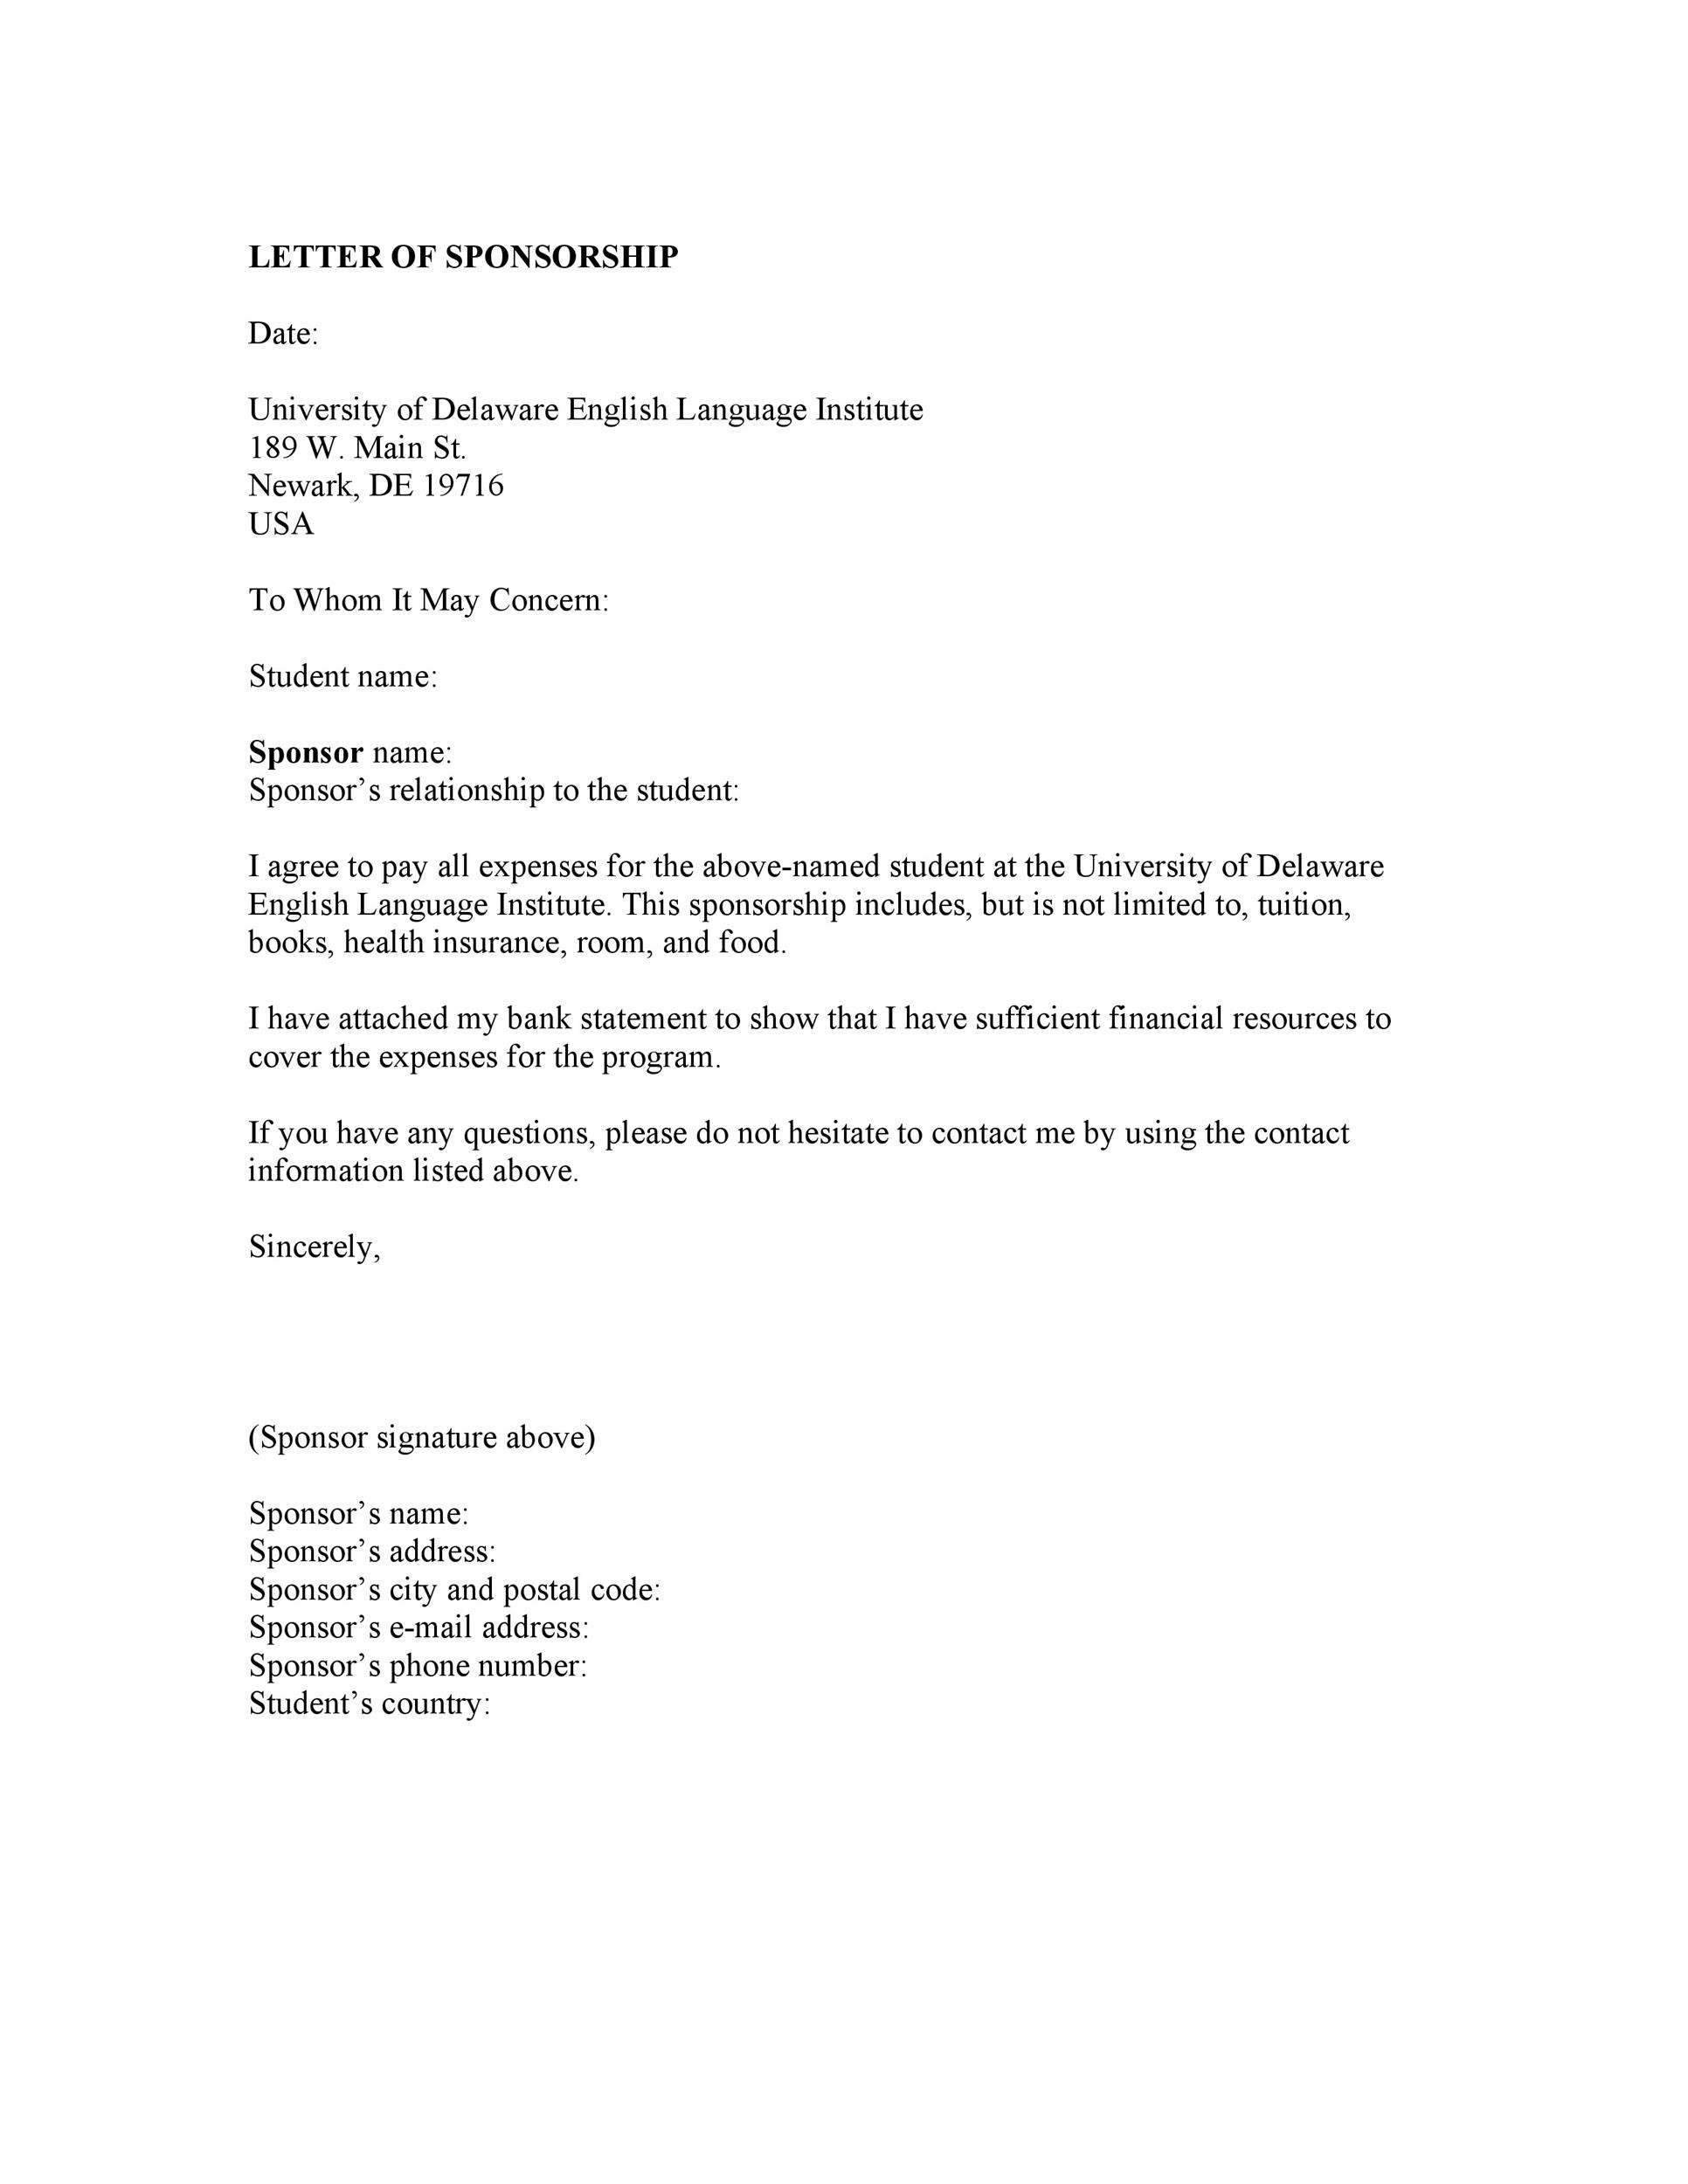 cover letter sponsorship exolgbabogadosco - Cover Letter For Sponsorship Proposal